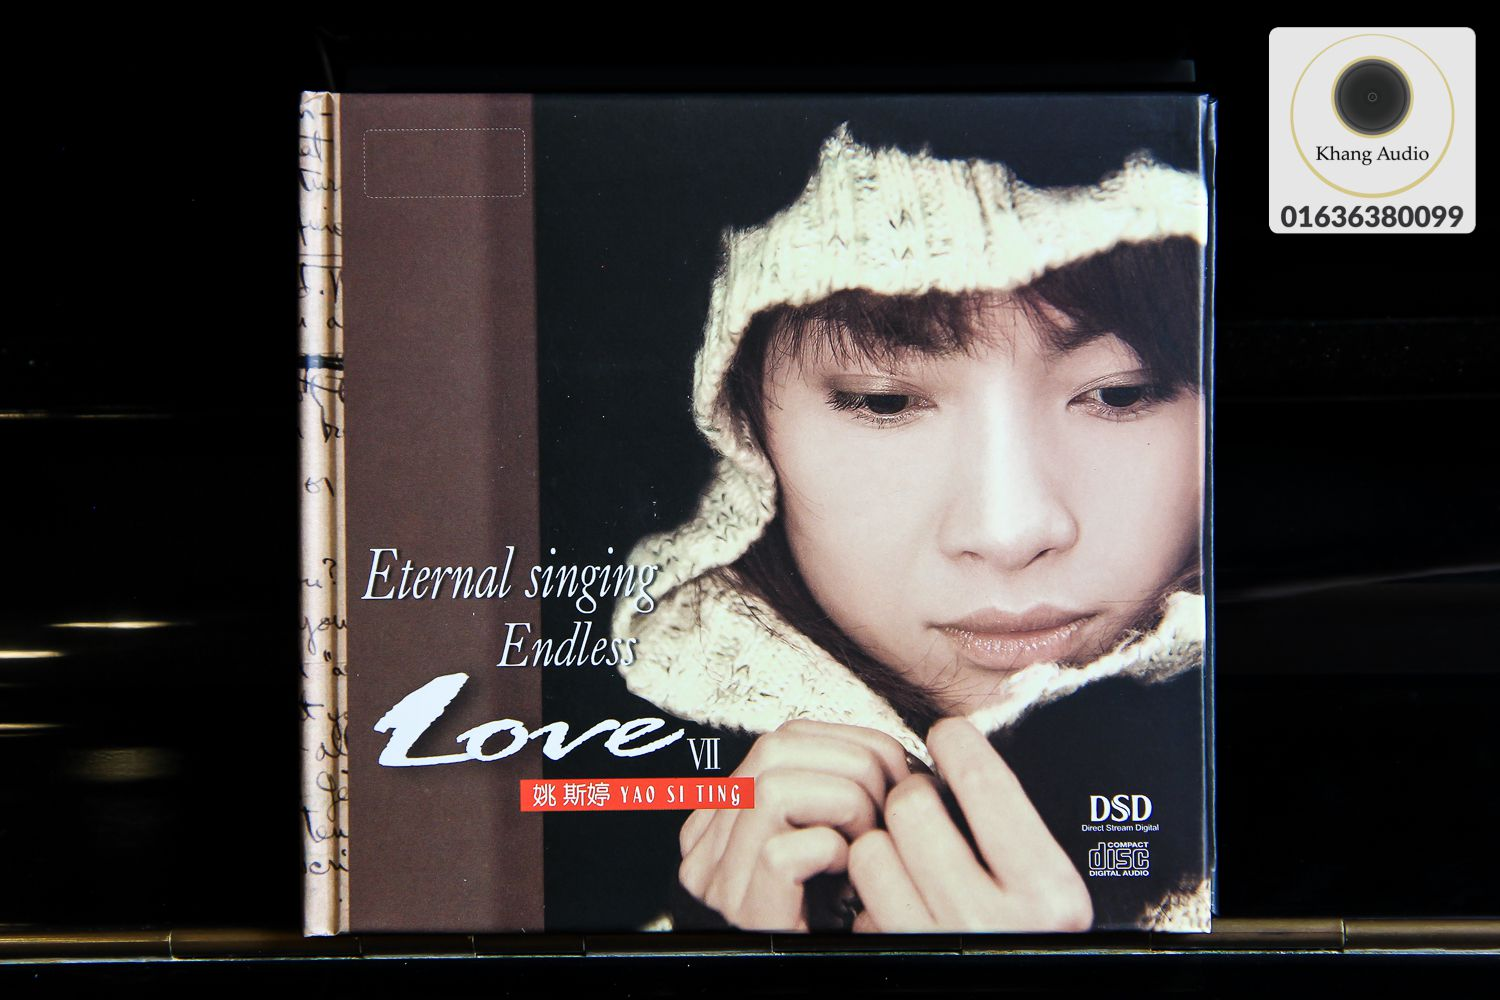 Eternal Singing Endless Love VII - Yao Si Ting Khang Audio 0336380099